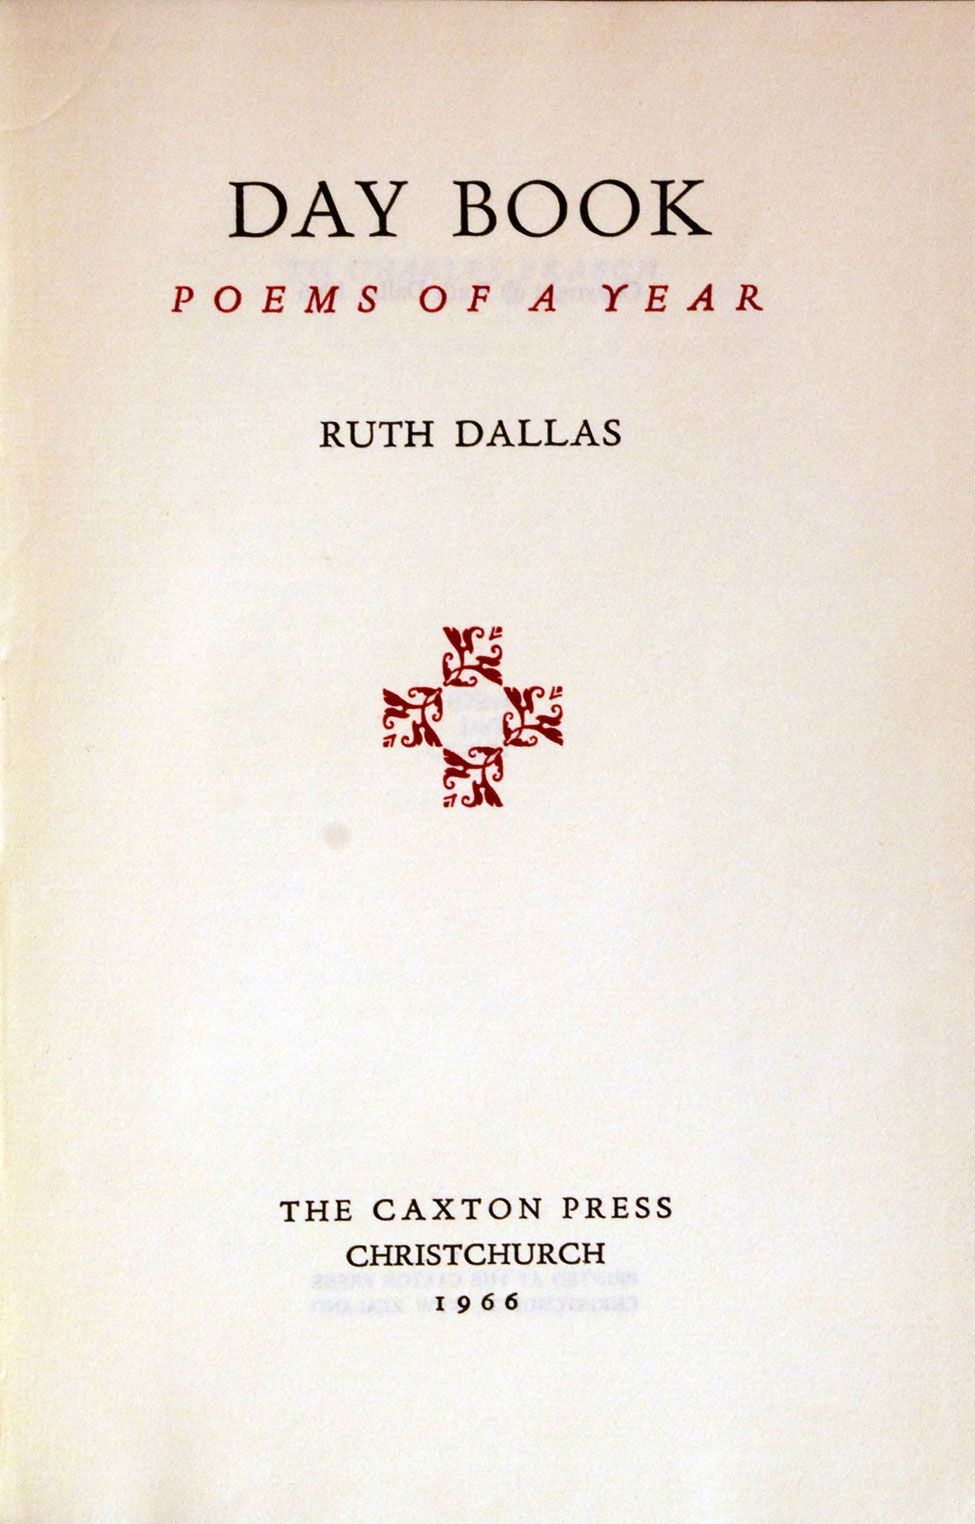 Ruth Dallas. Day Book: Poems of a Year. <i>Christchurch: The Caxton Press, 1966.</i>